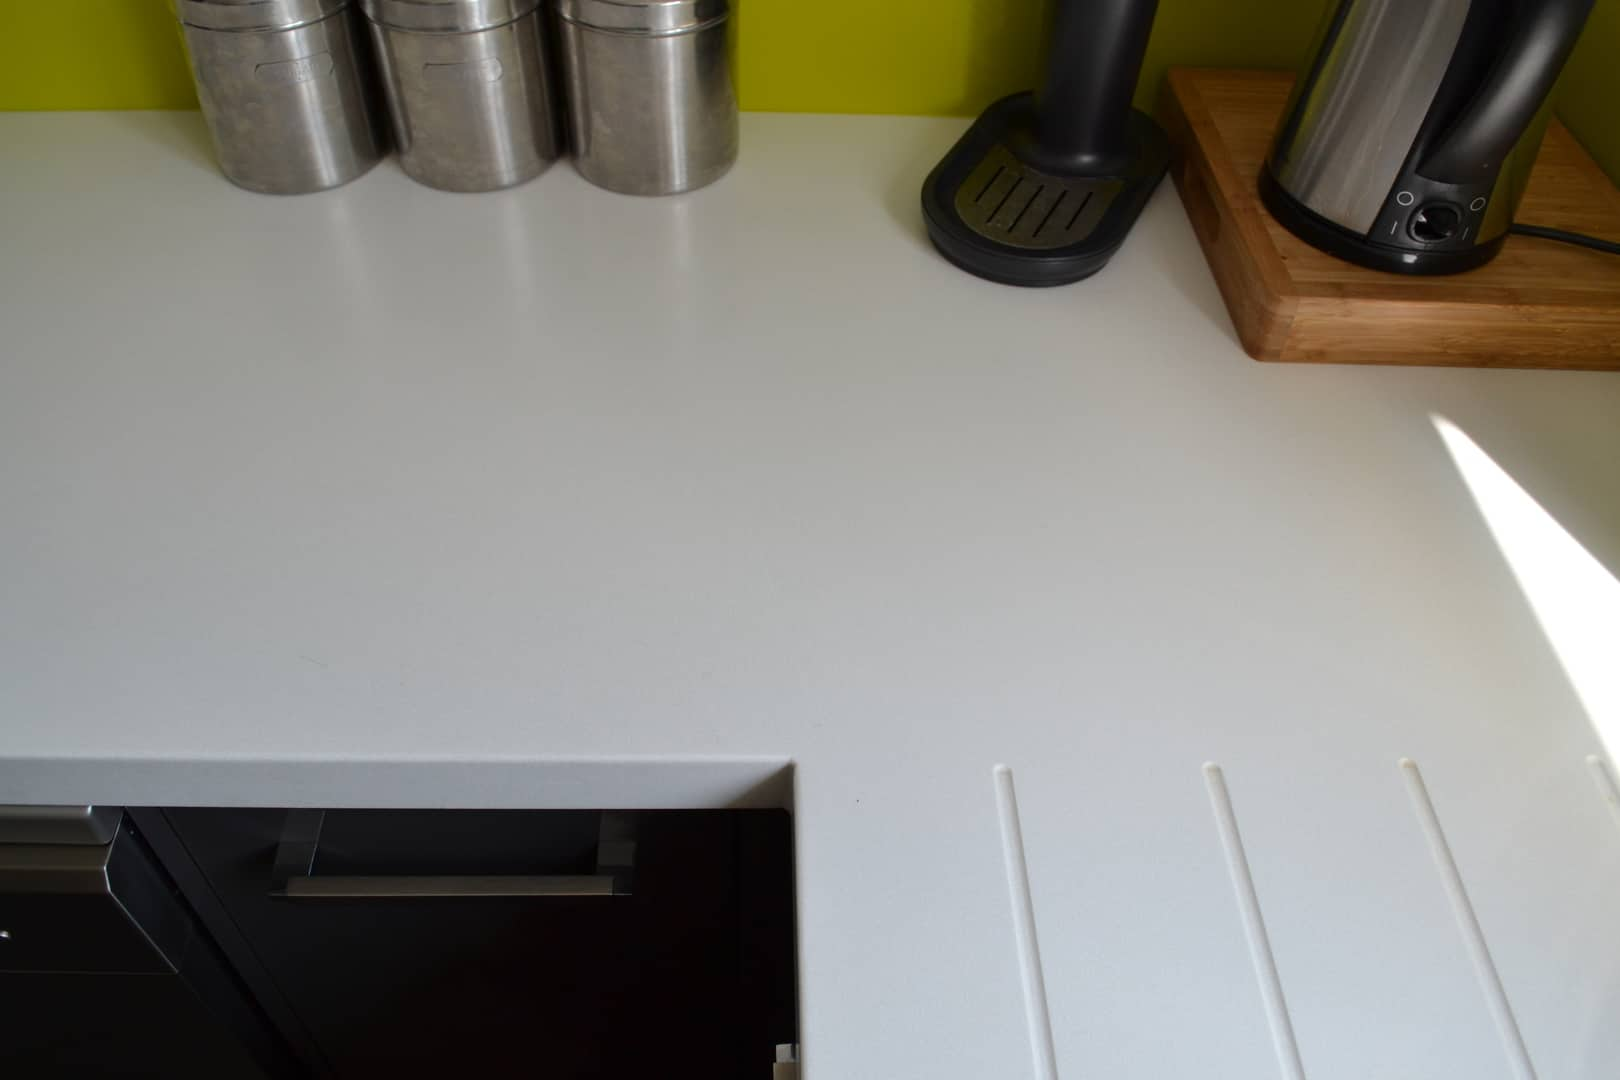 Encore Glacier worktop with draining grooves